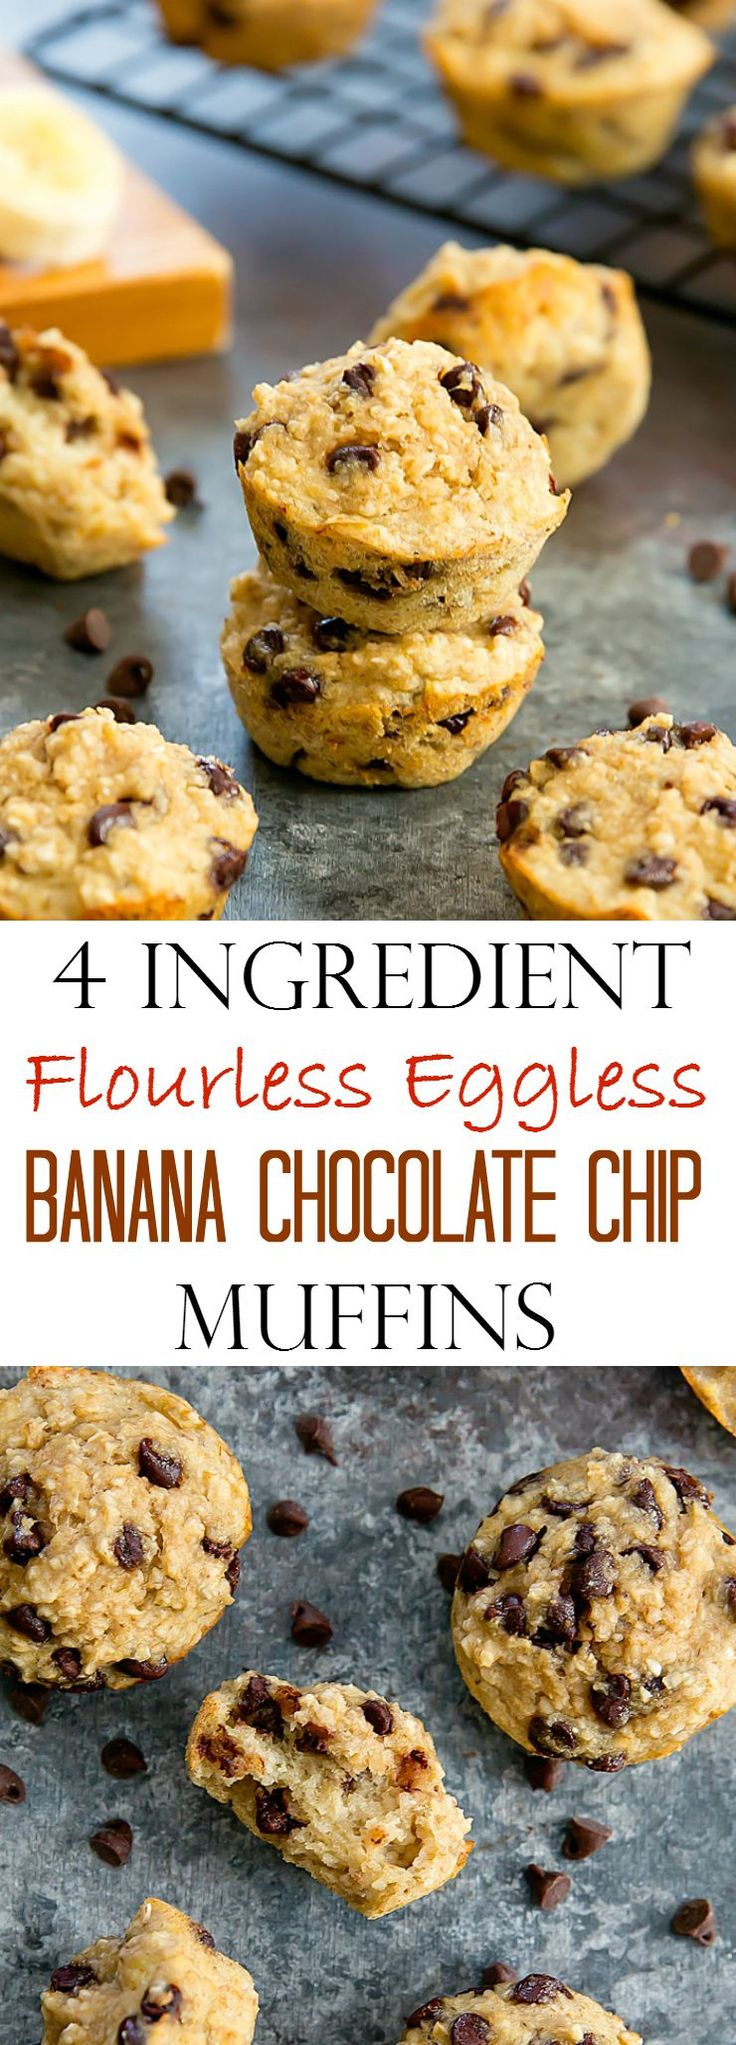 4 Ingredient Flourless Banana Chocolate Chip Muffins. These easy muffins are gluten free, eggless, flourless and do not contain any added oil or sugar. And they taste just like regular classic banana (Flourless Muffin)